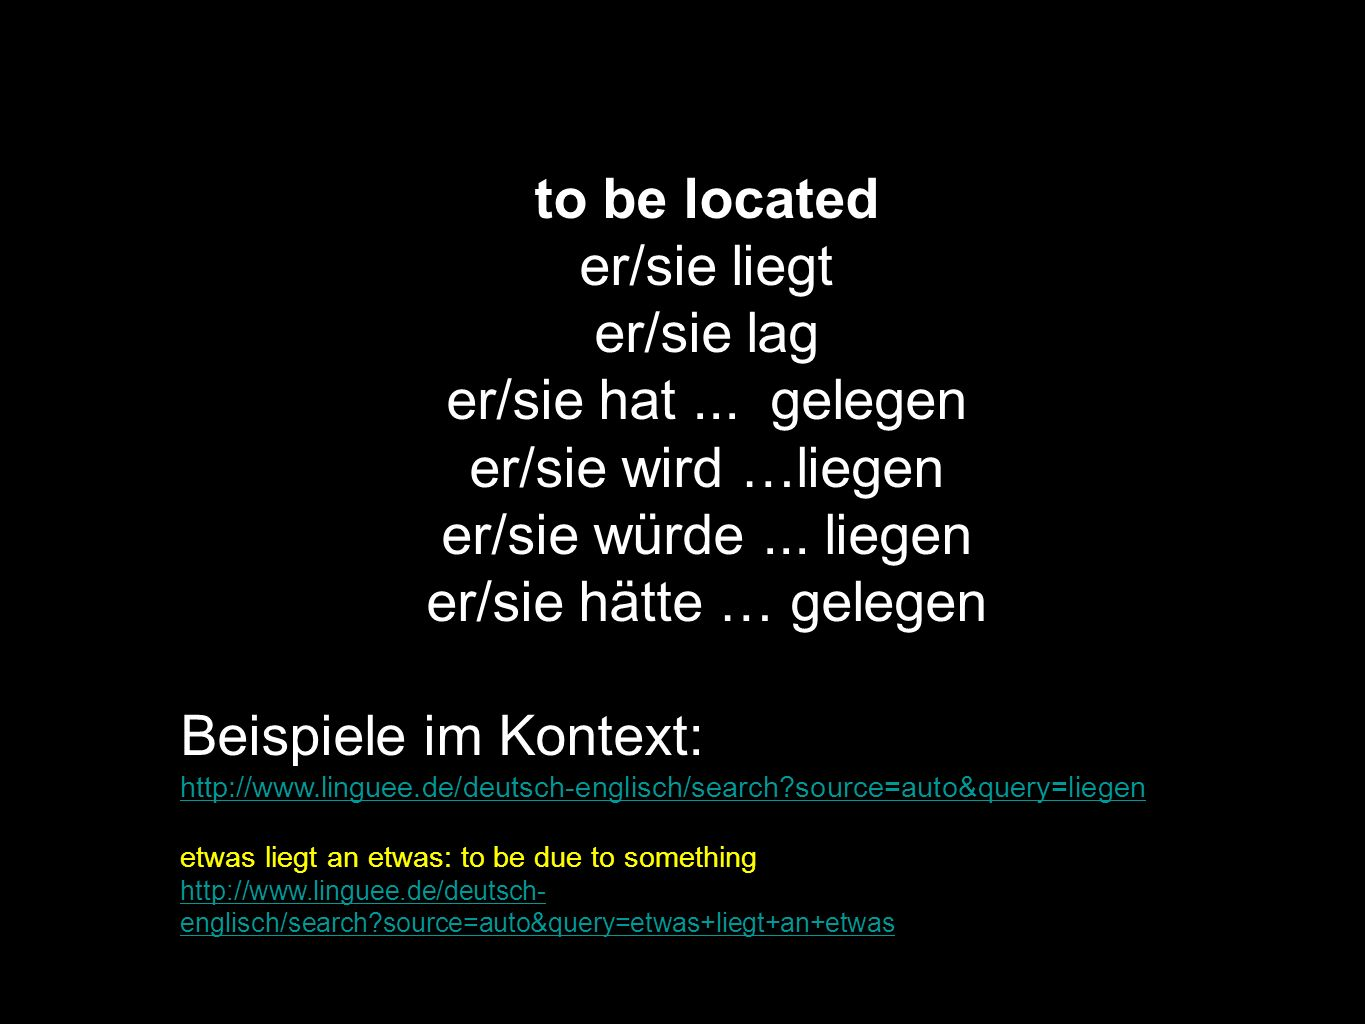 to be located er/sie liegt er/sie lag er/sie hat ... gelegen